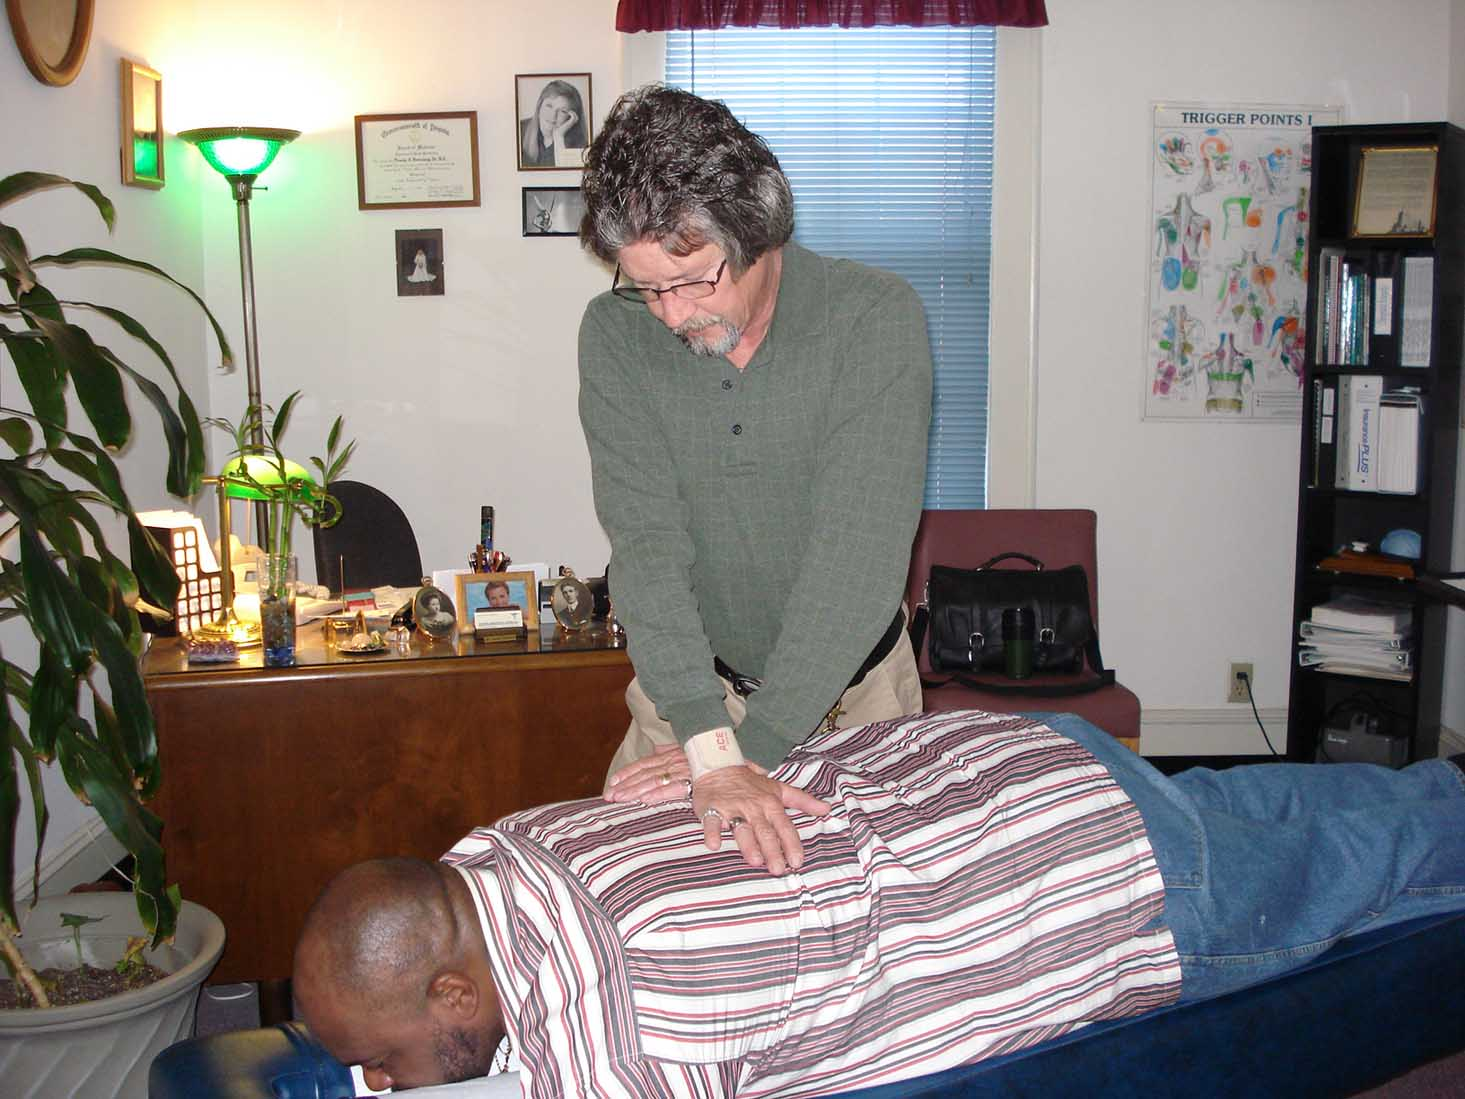 Chiropractic spinal manipulation